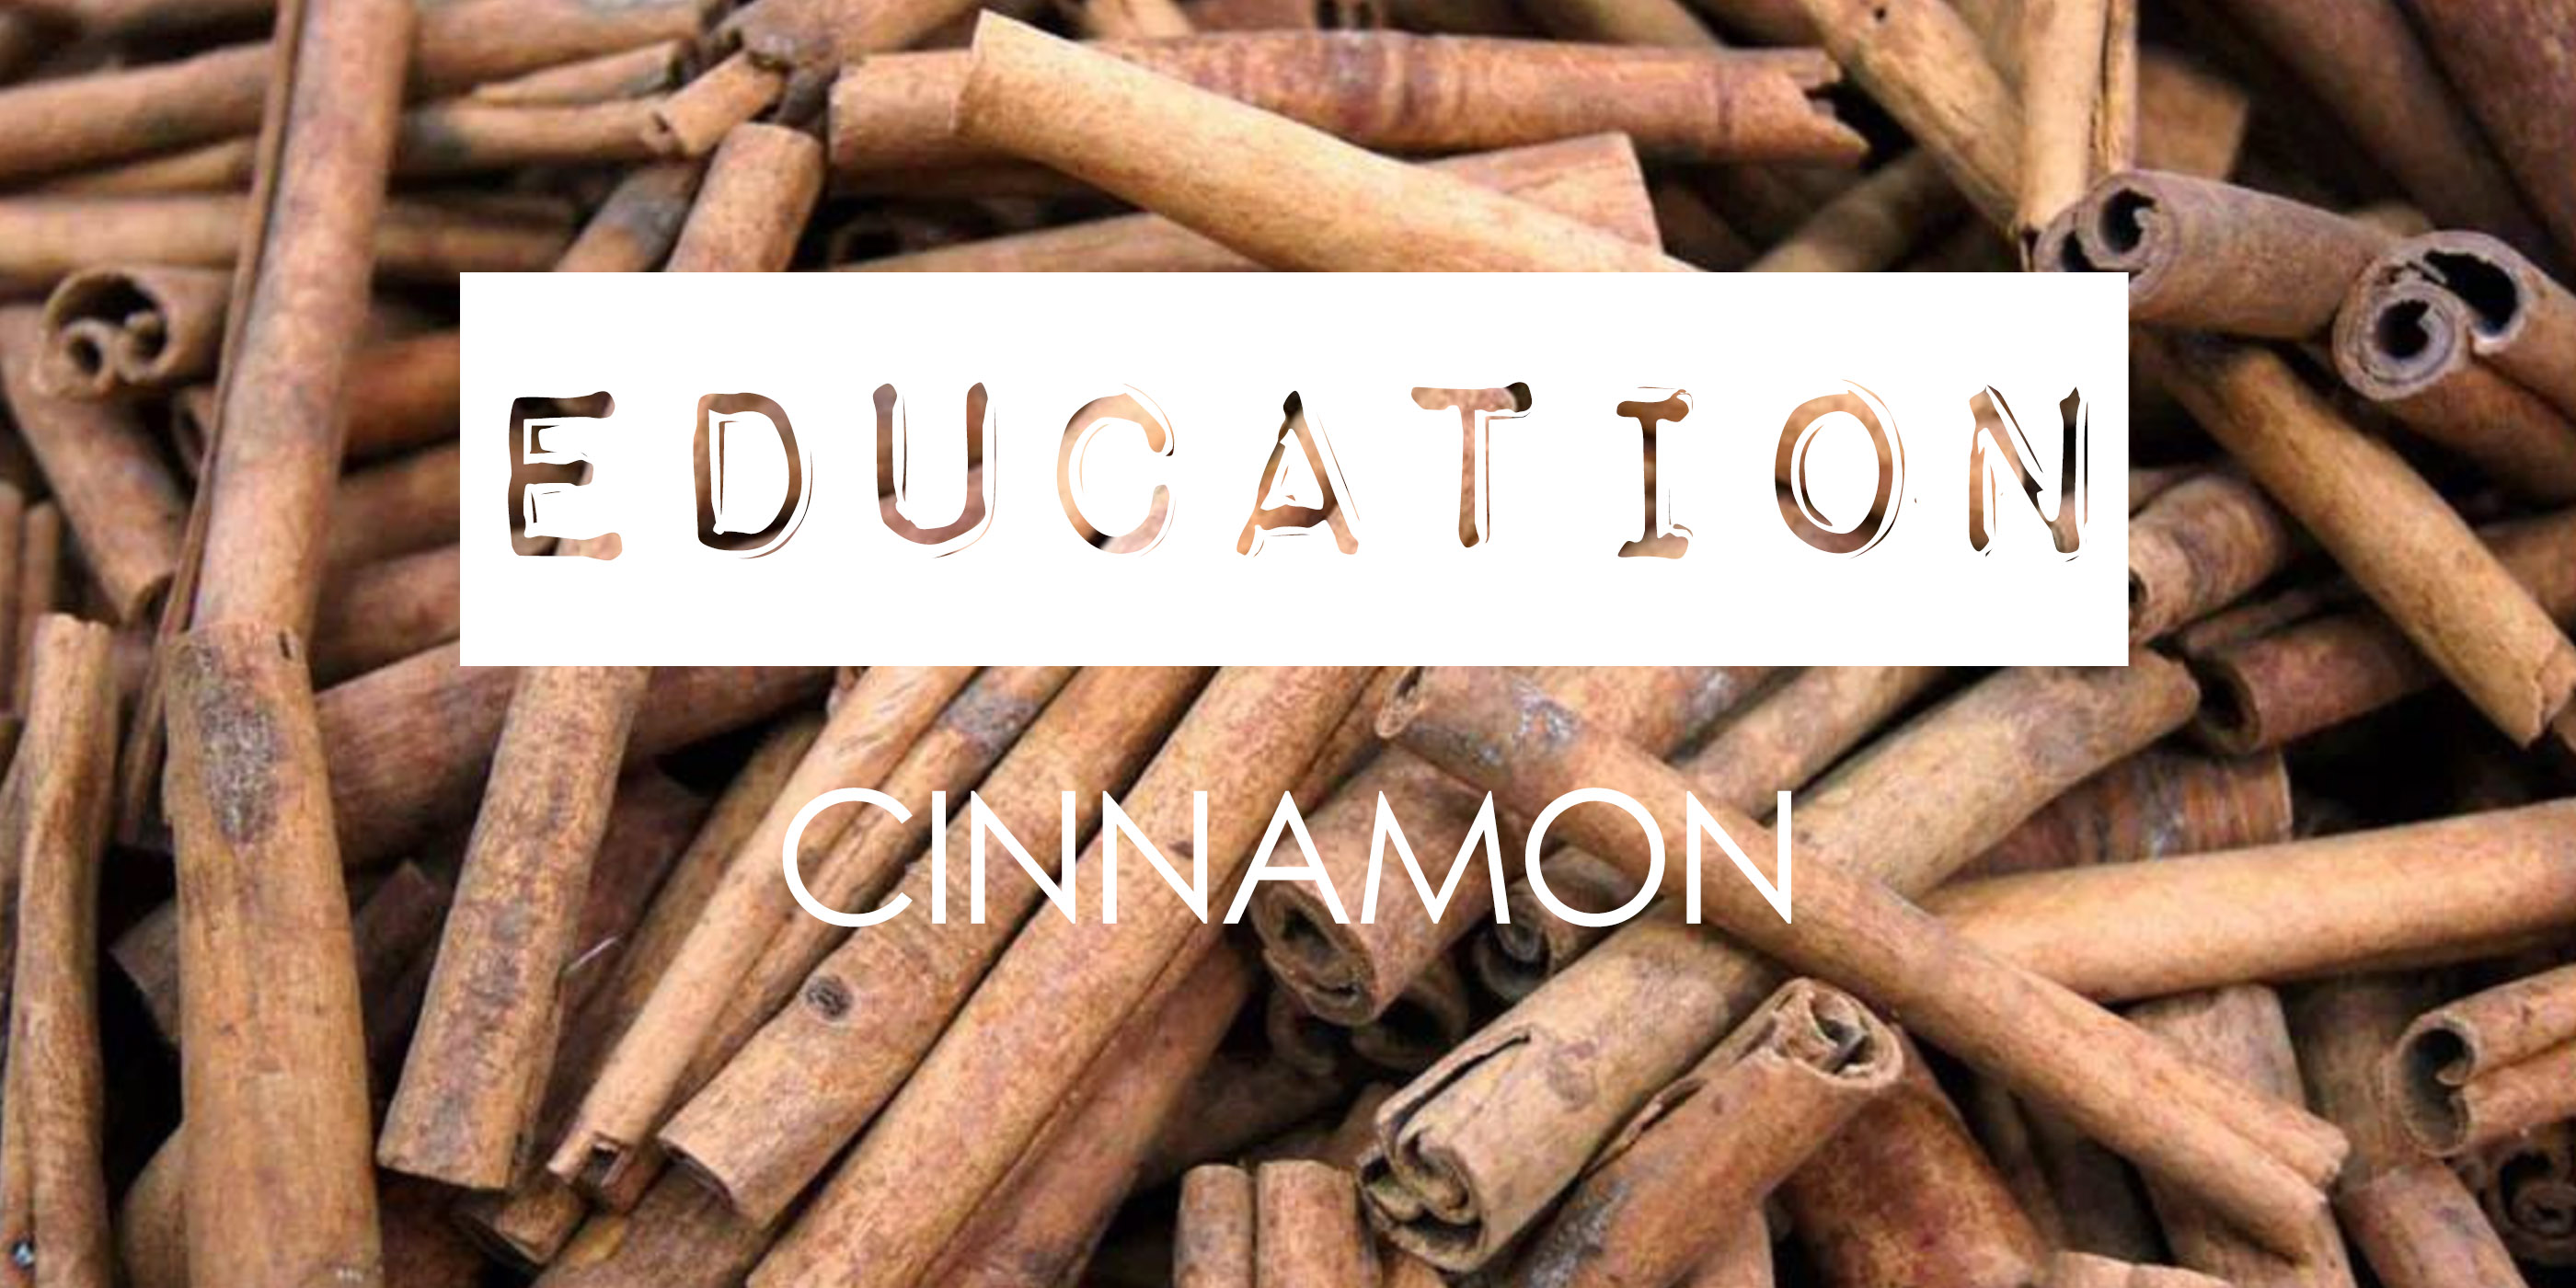 Education_Cinnamon parfum ingredients